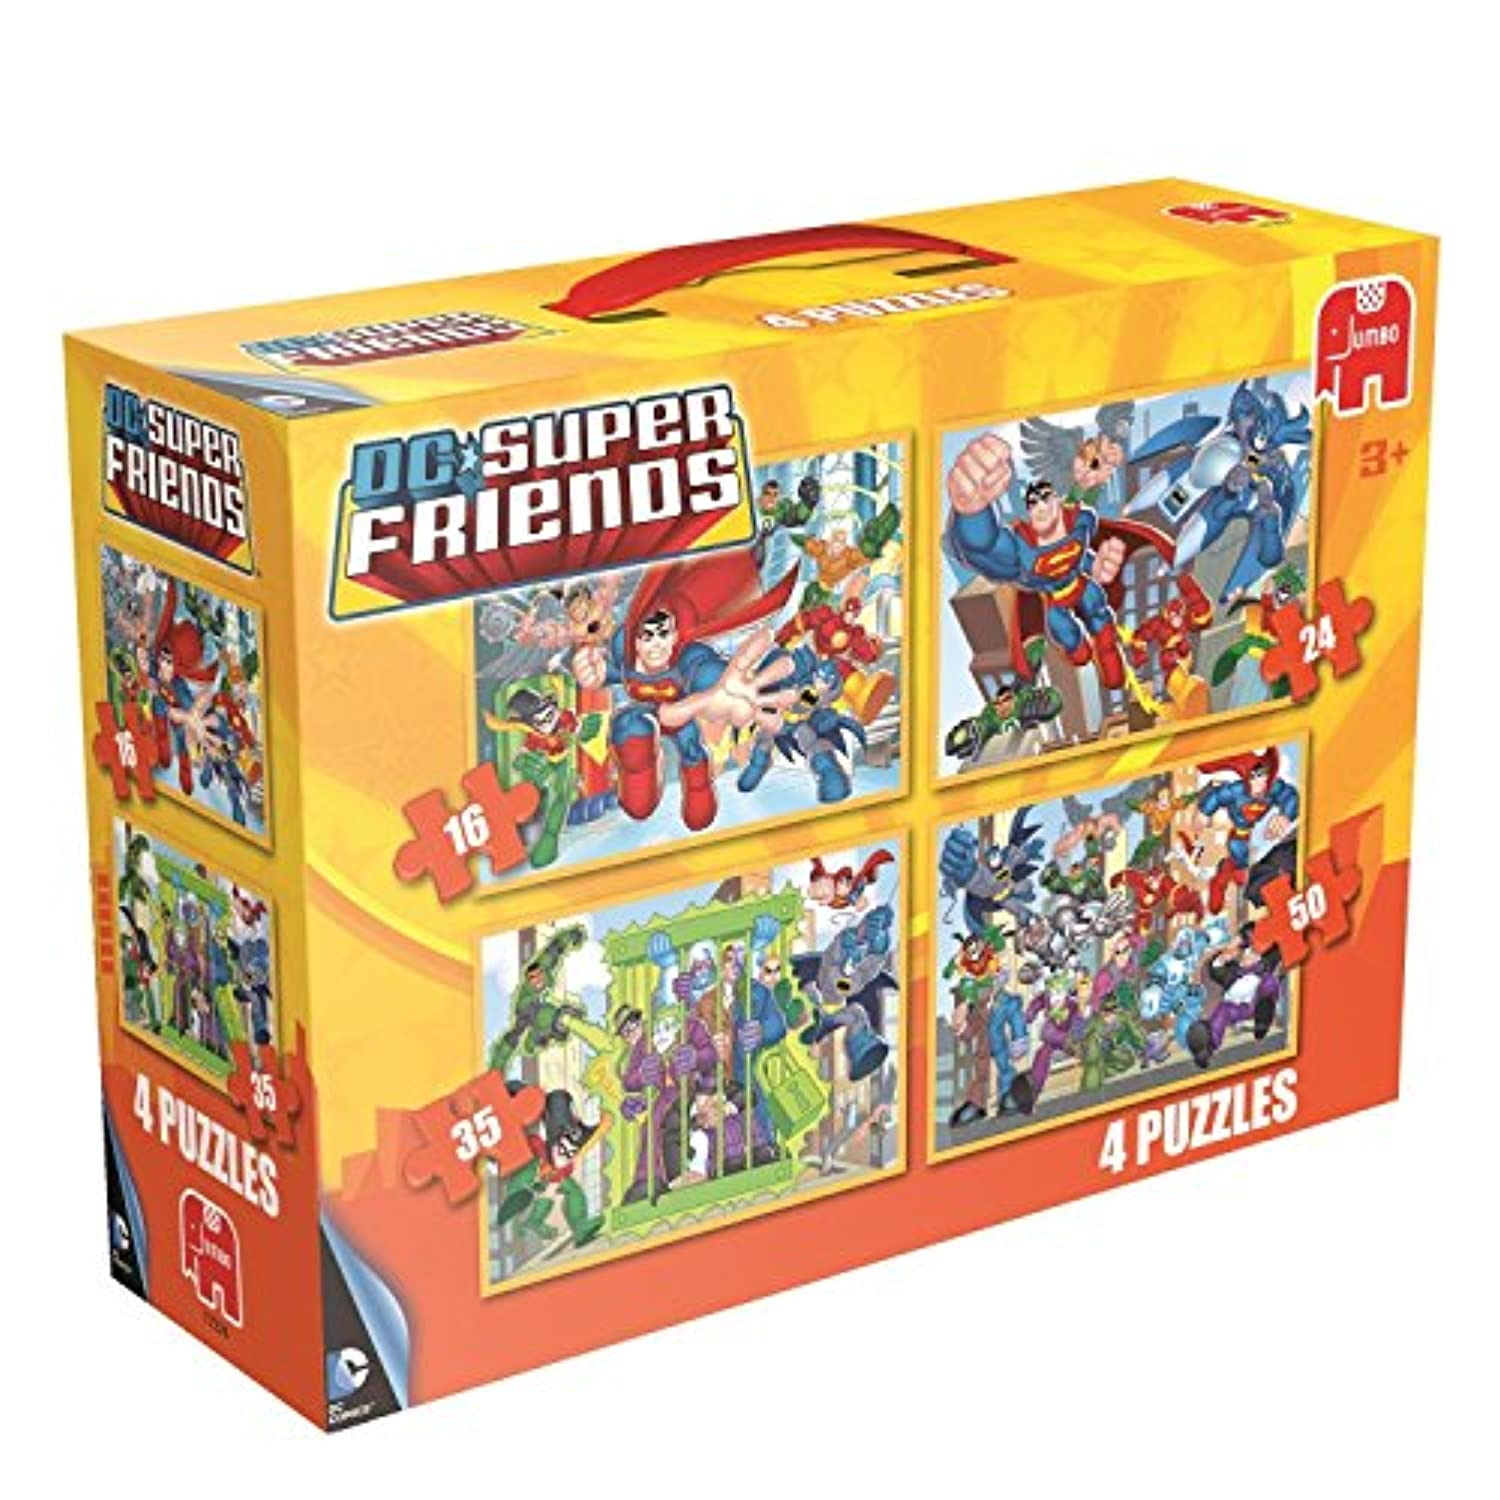 DC Comics Super Friends 4 in a Box Puzzles 16 24 35 and 50 Piece Ages 3+